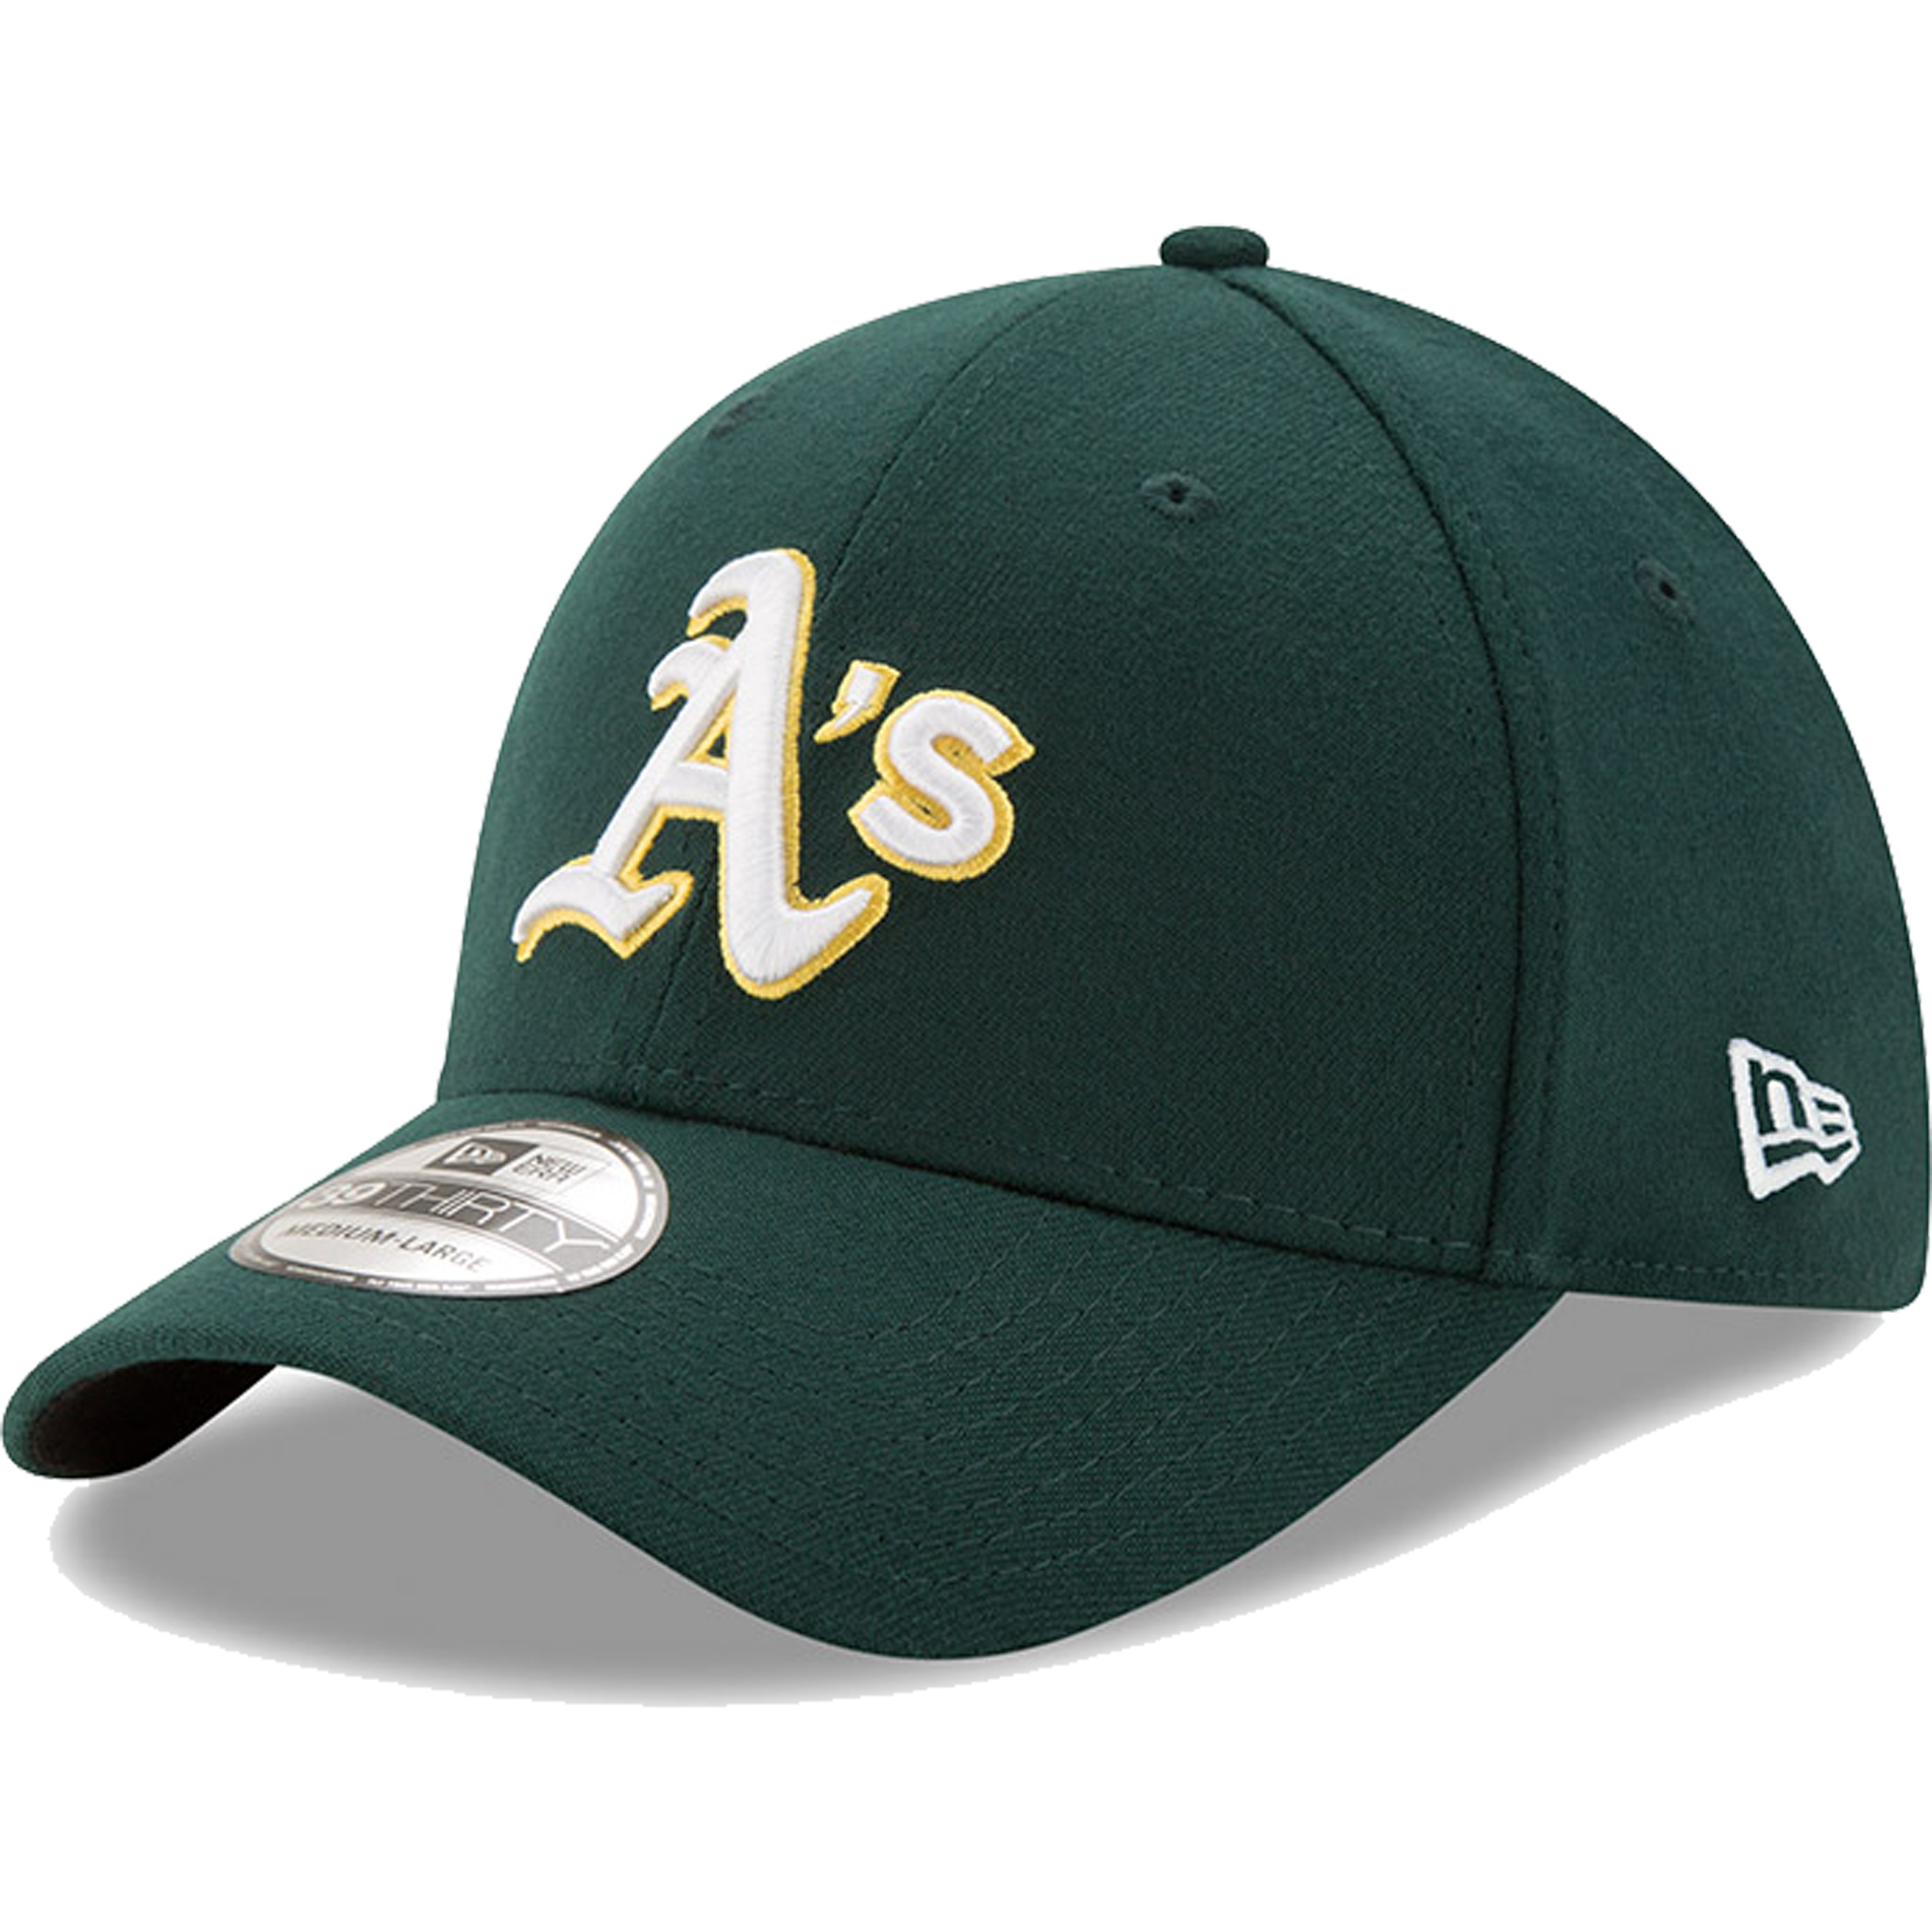 Oakland Athletics New Era Team Classic Road 39THIRTY Flex Hat - Green